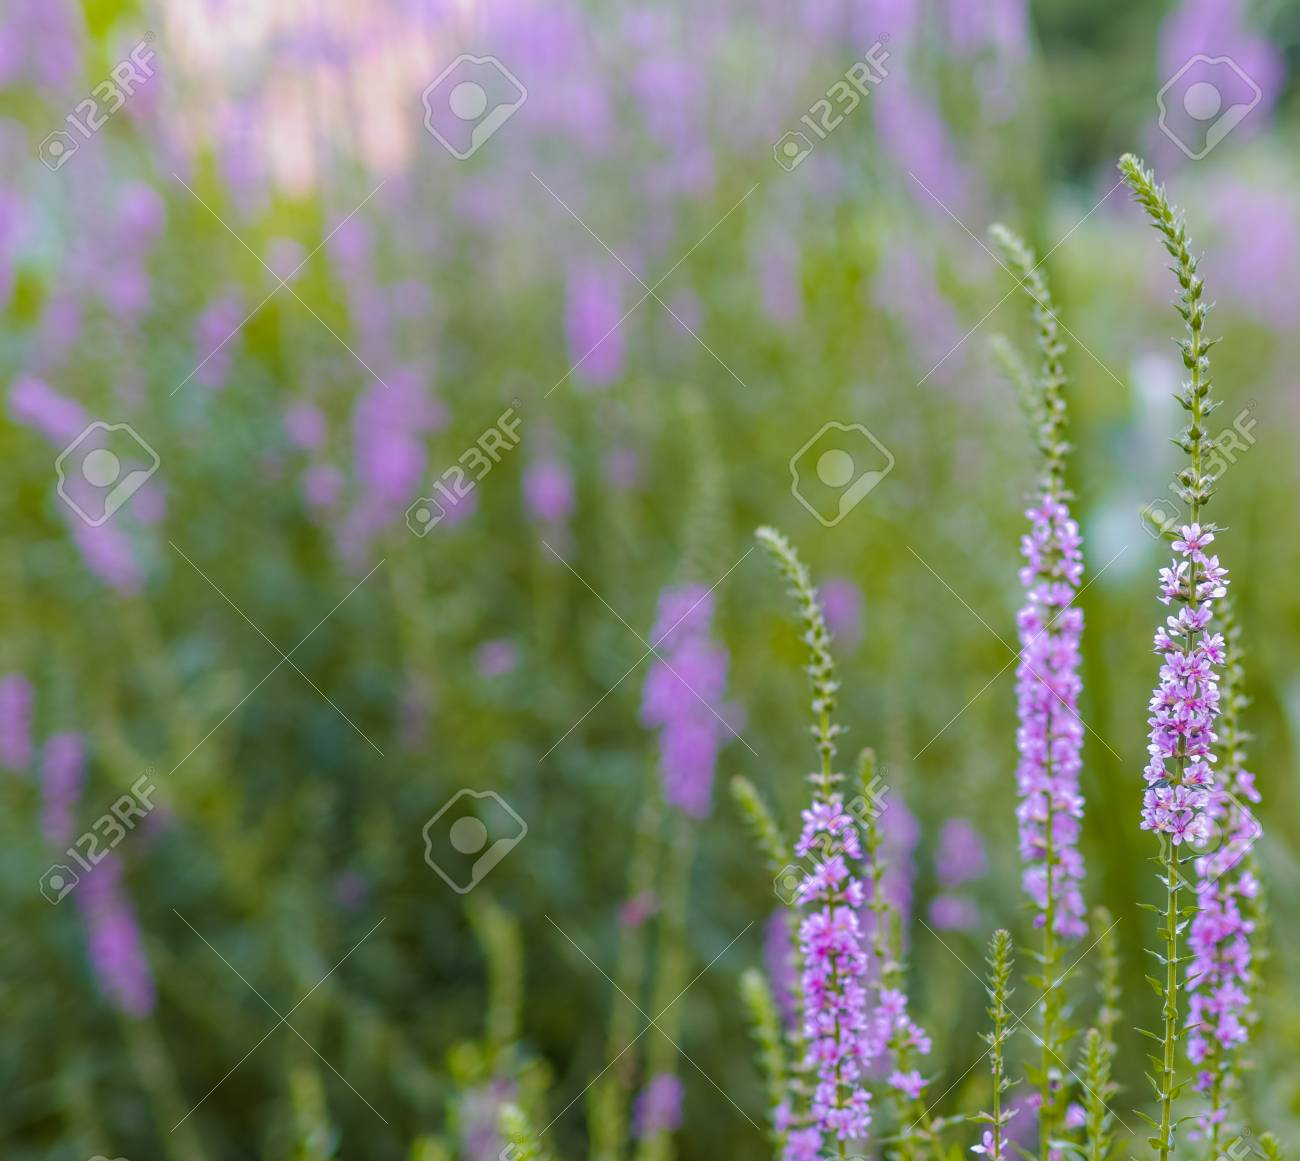 Beautiful lavender flowers on blur background stock photo picture beautiful lavender flowers on blur background stock photo 82664416 izmirmasajfo